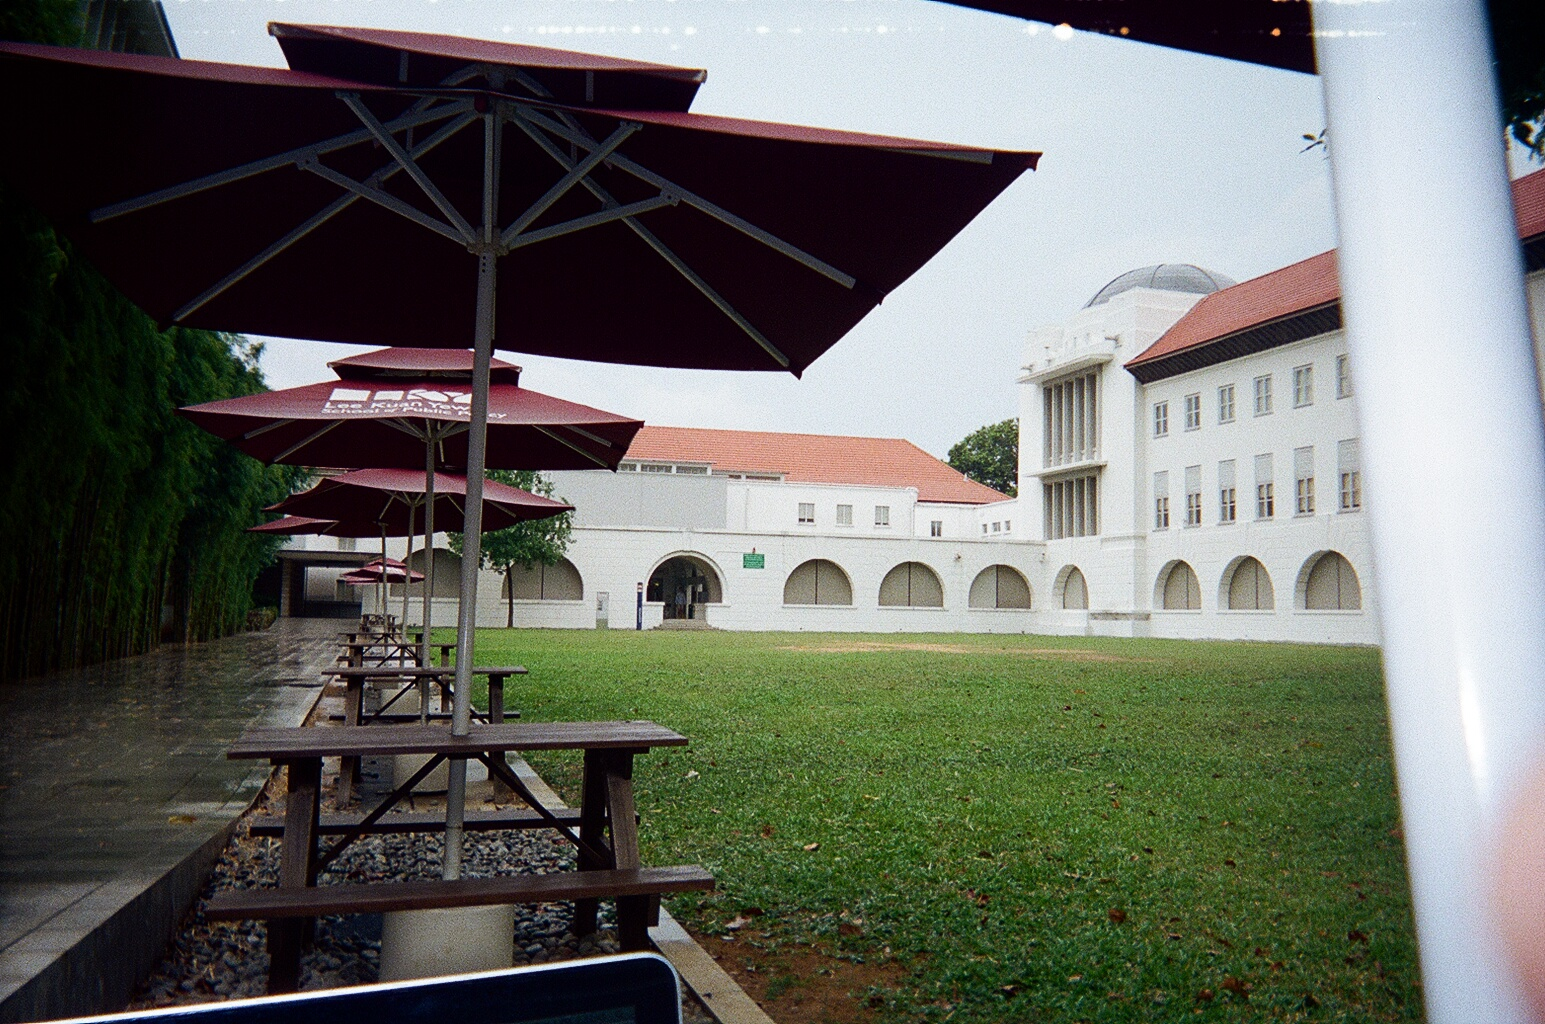 A rainy day on the Lower Quad